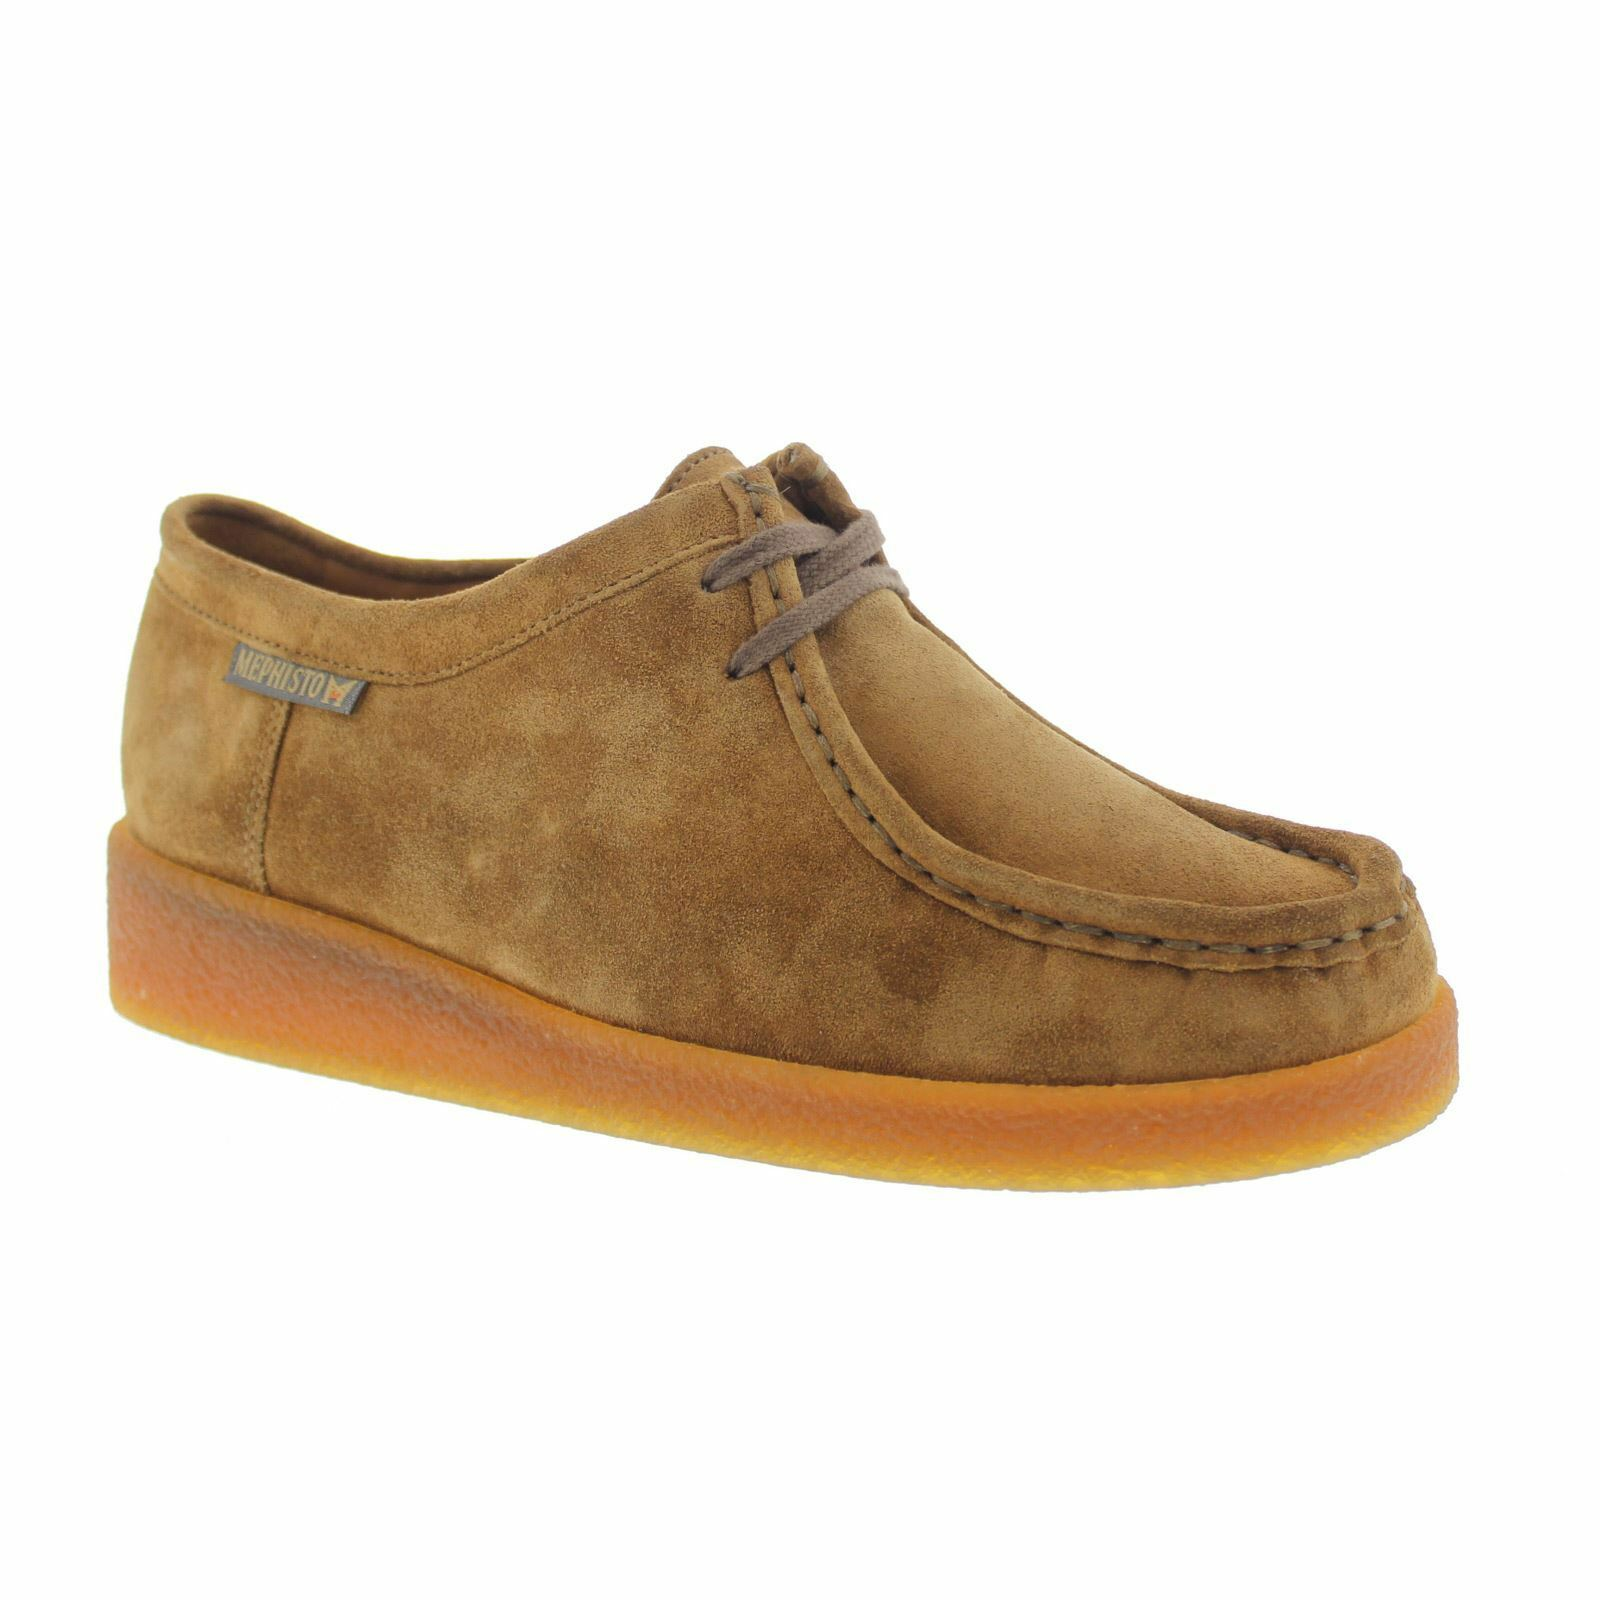 Mephisto Christy Tobacco femmes Suede Lace Up Low-Profile Moccasins chaussures